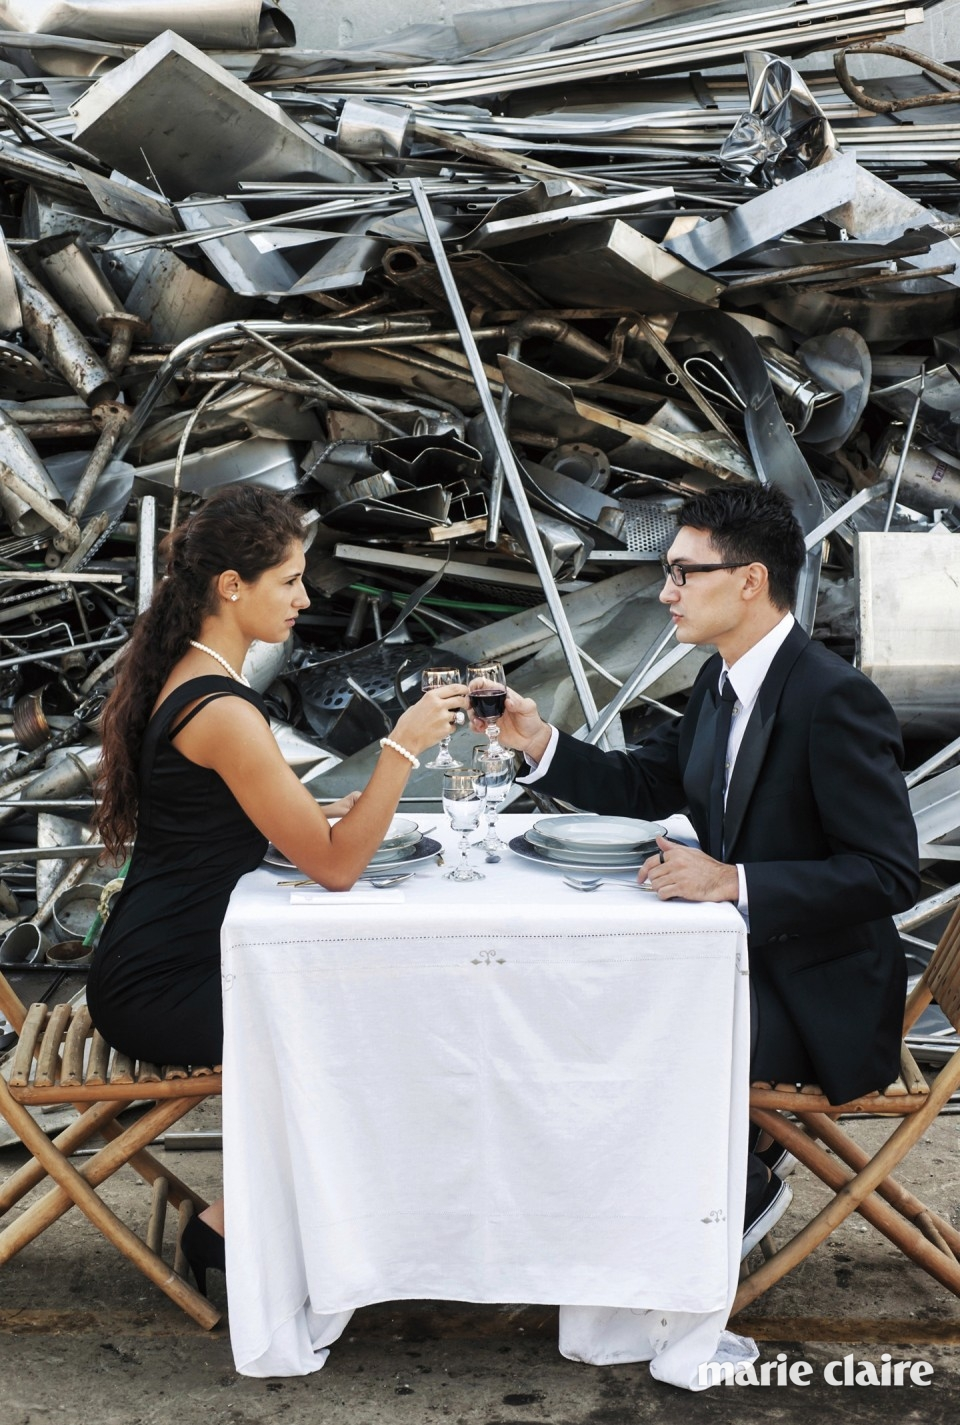 Couple Toasting in Landfill